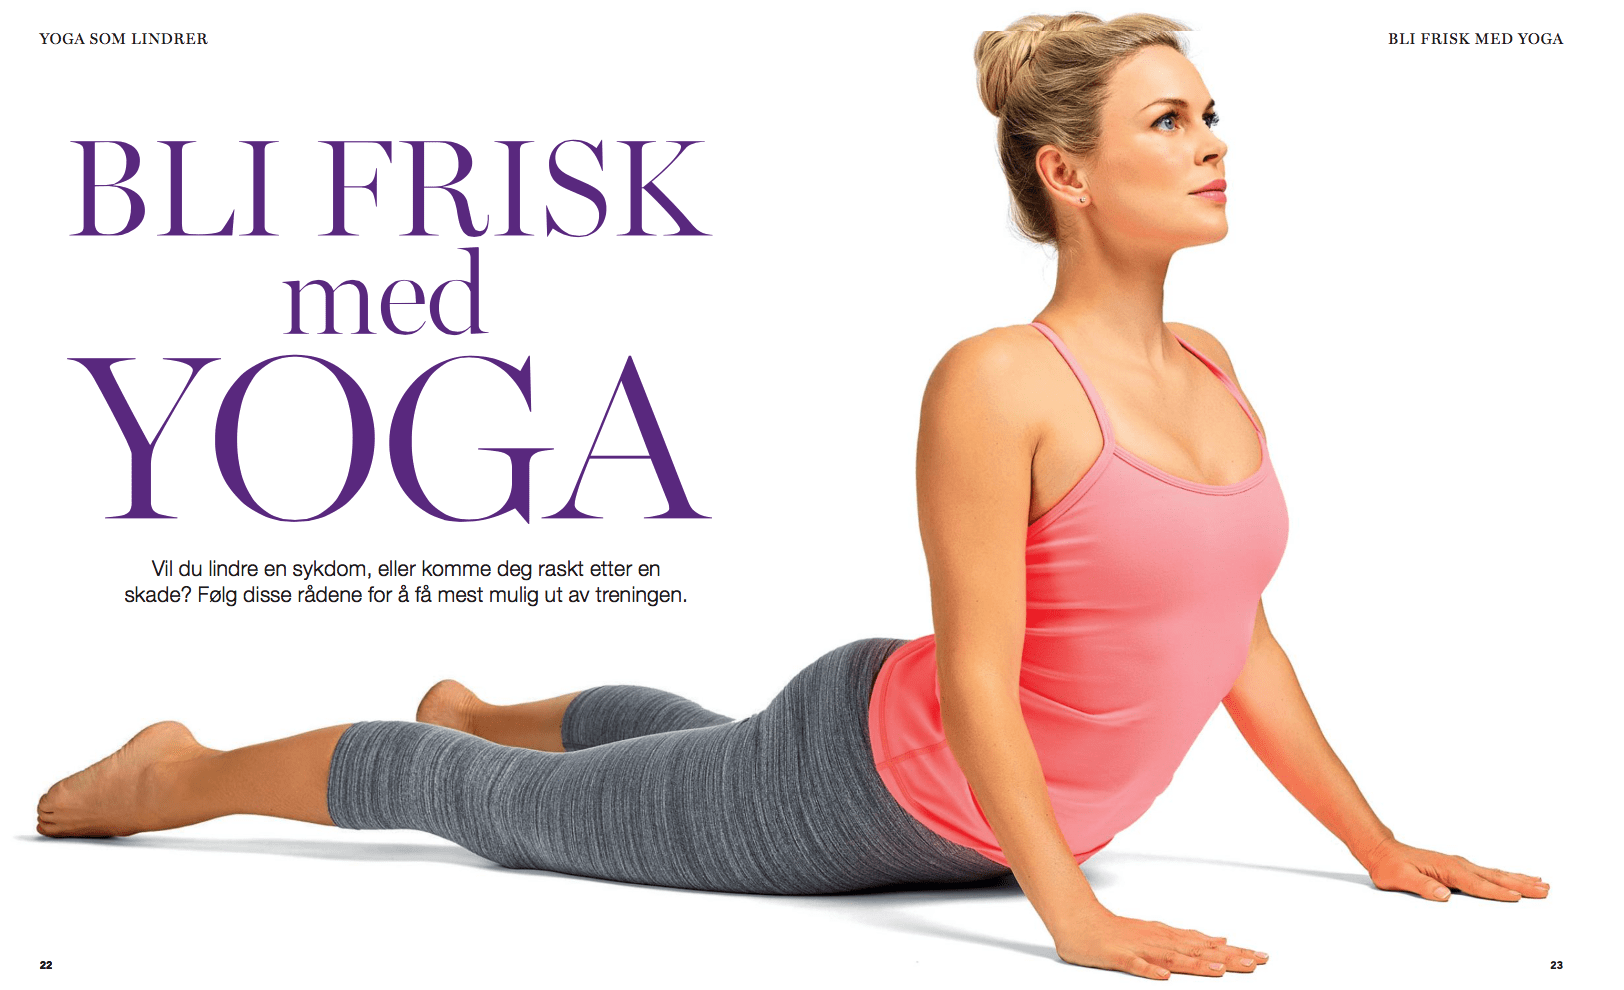 Yoga som lindrer, oppslag